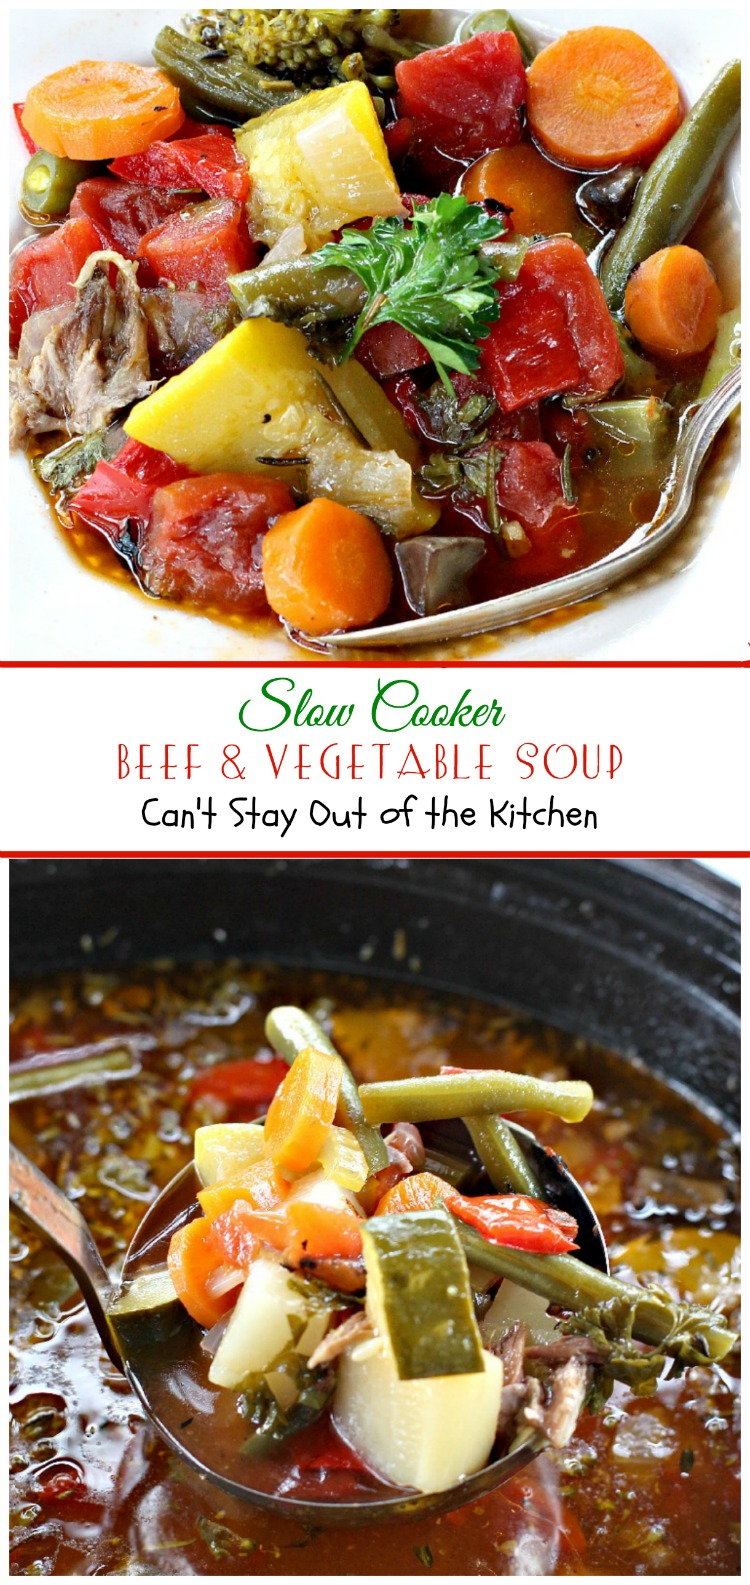 Slow Cooker Beef and Vegetable Soup | Can't Stay Out of the Kitchen ...